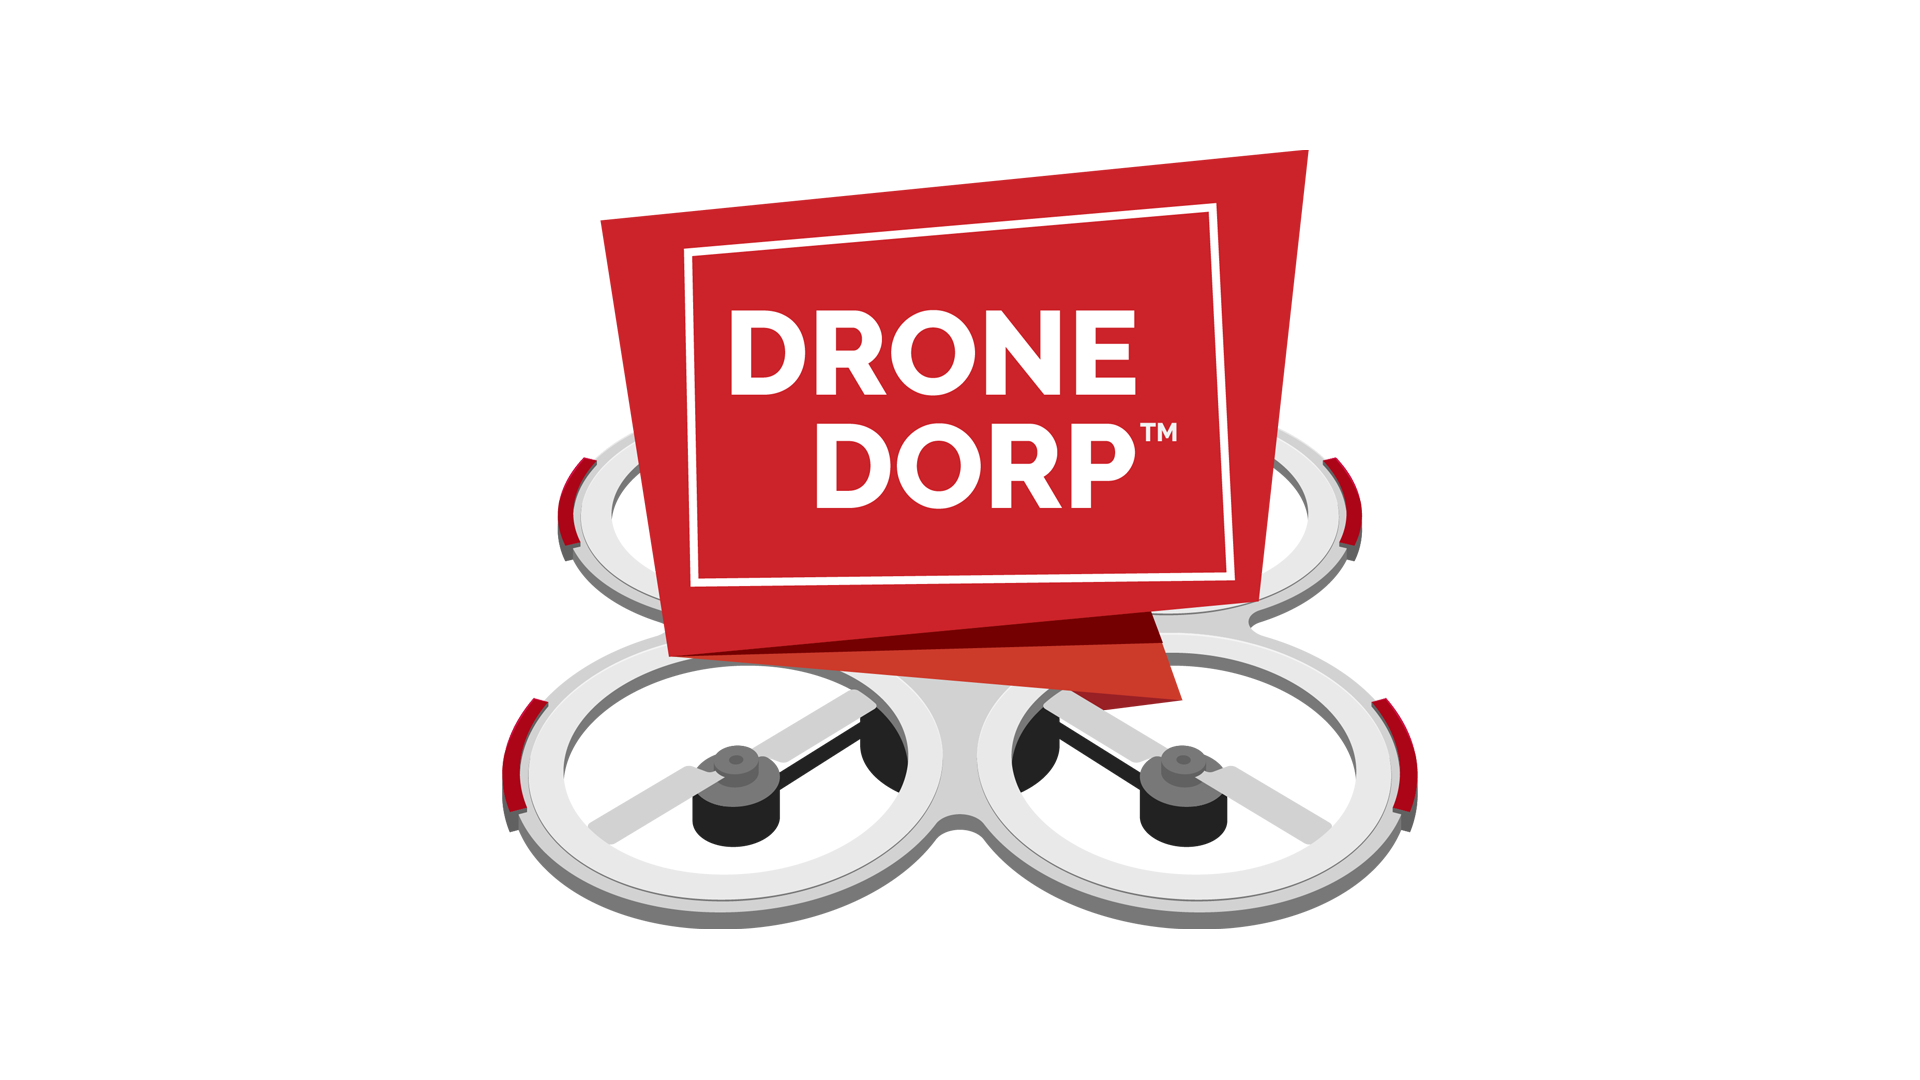 dronedorp-slide_pd